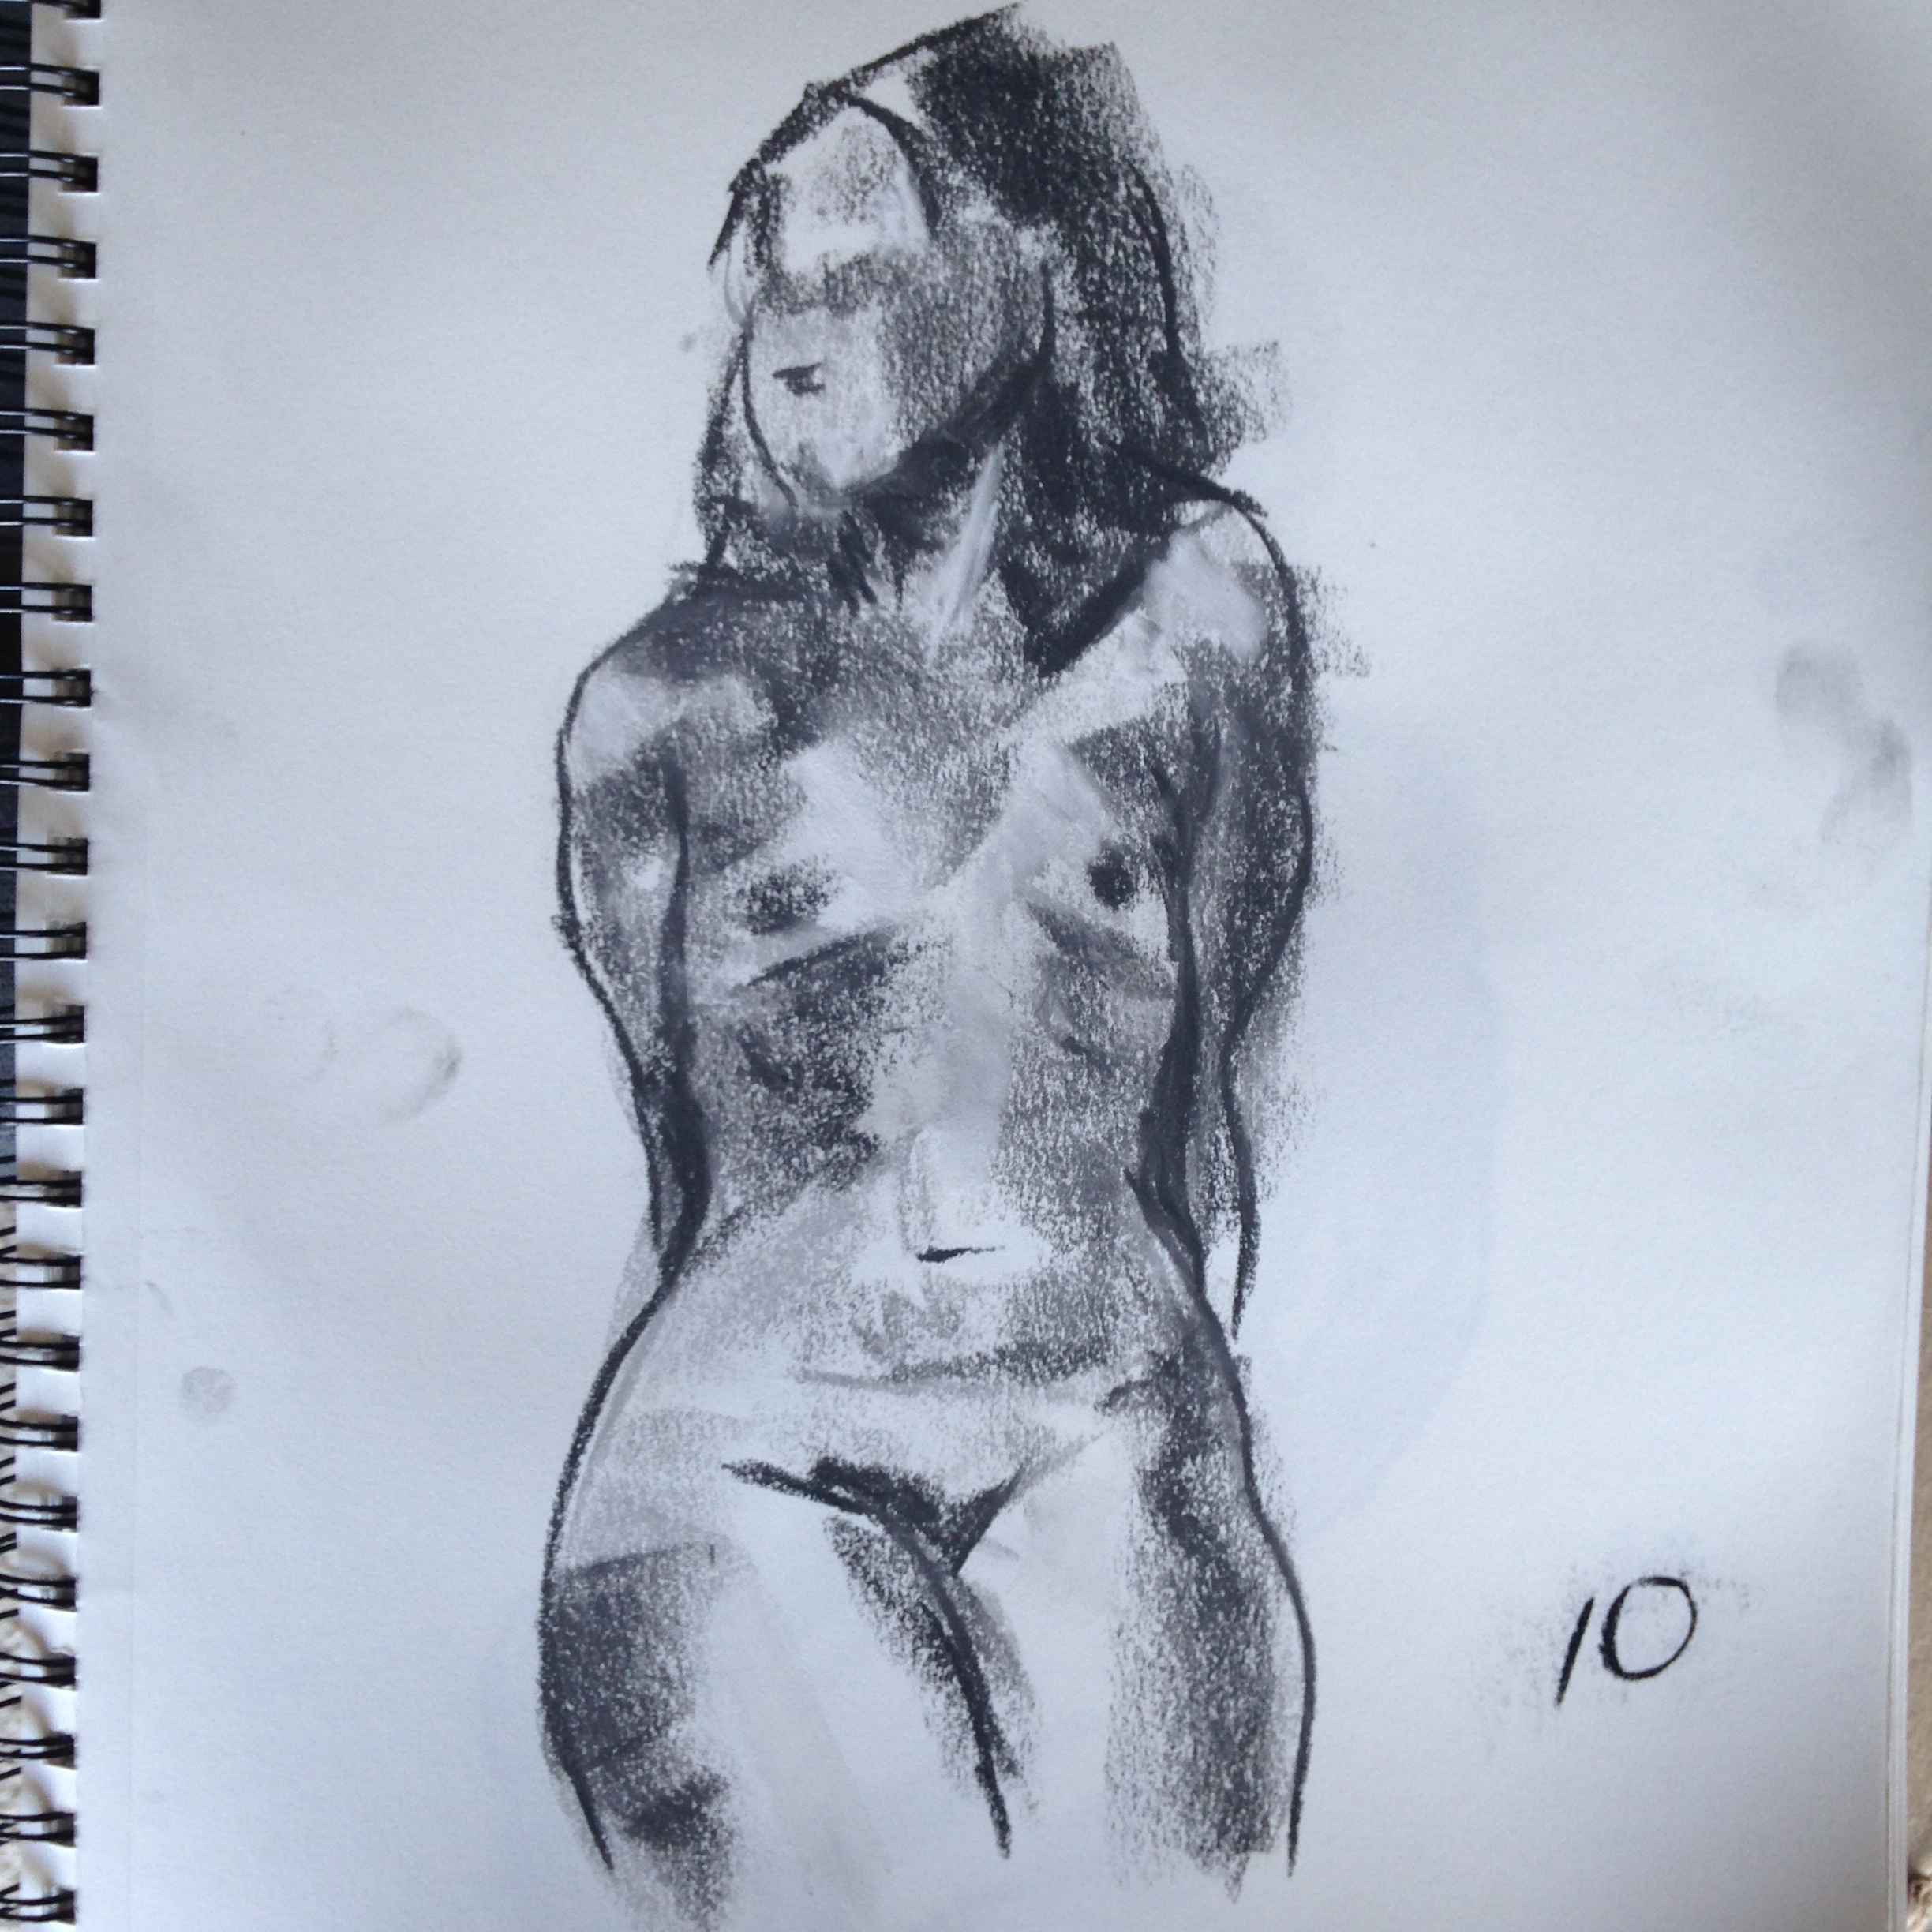 Life Drawing - Pastel on 11x15 sketchbook paper